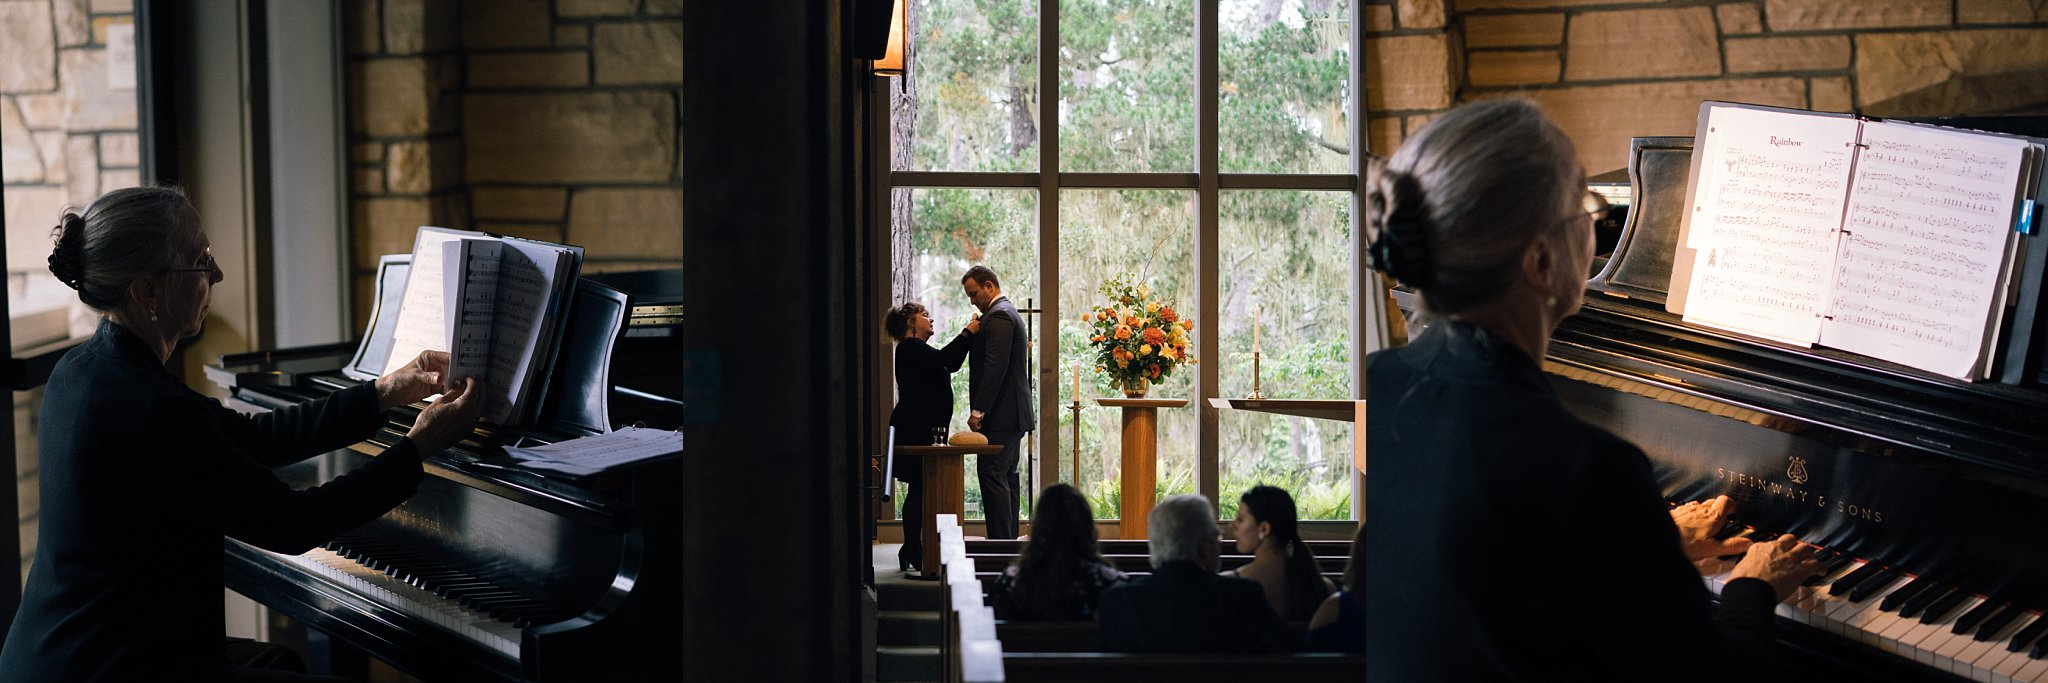 monterey-wedding-photographer-pebble-beach-church-in-the-forest-wedding-bride-groom-morgan-anthony_0009.jpg